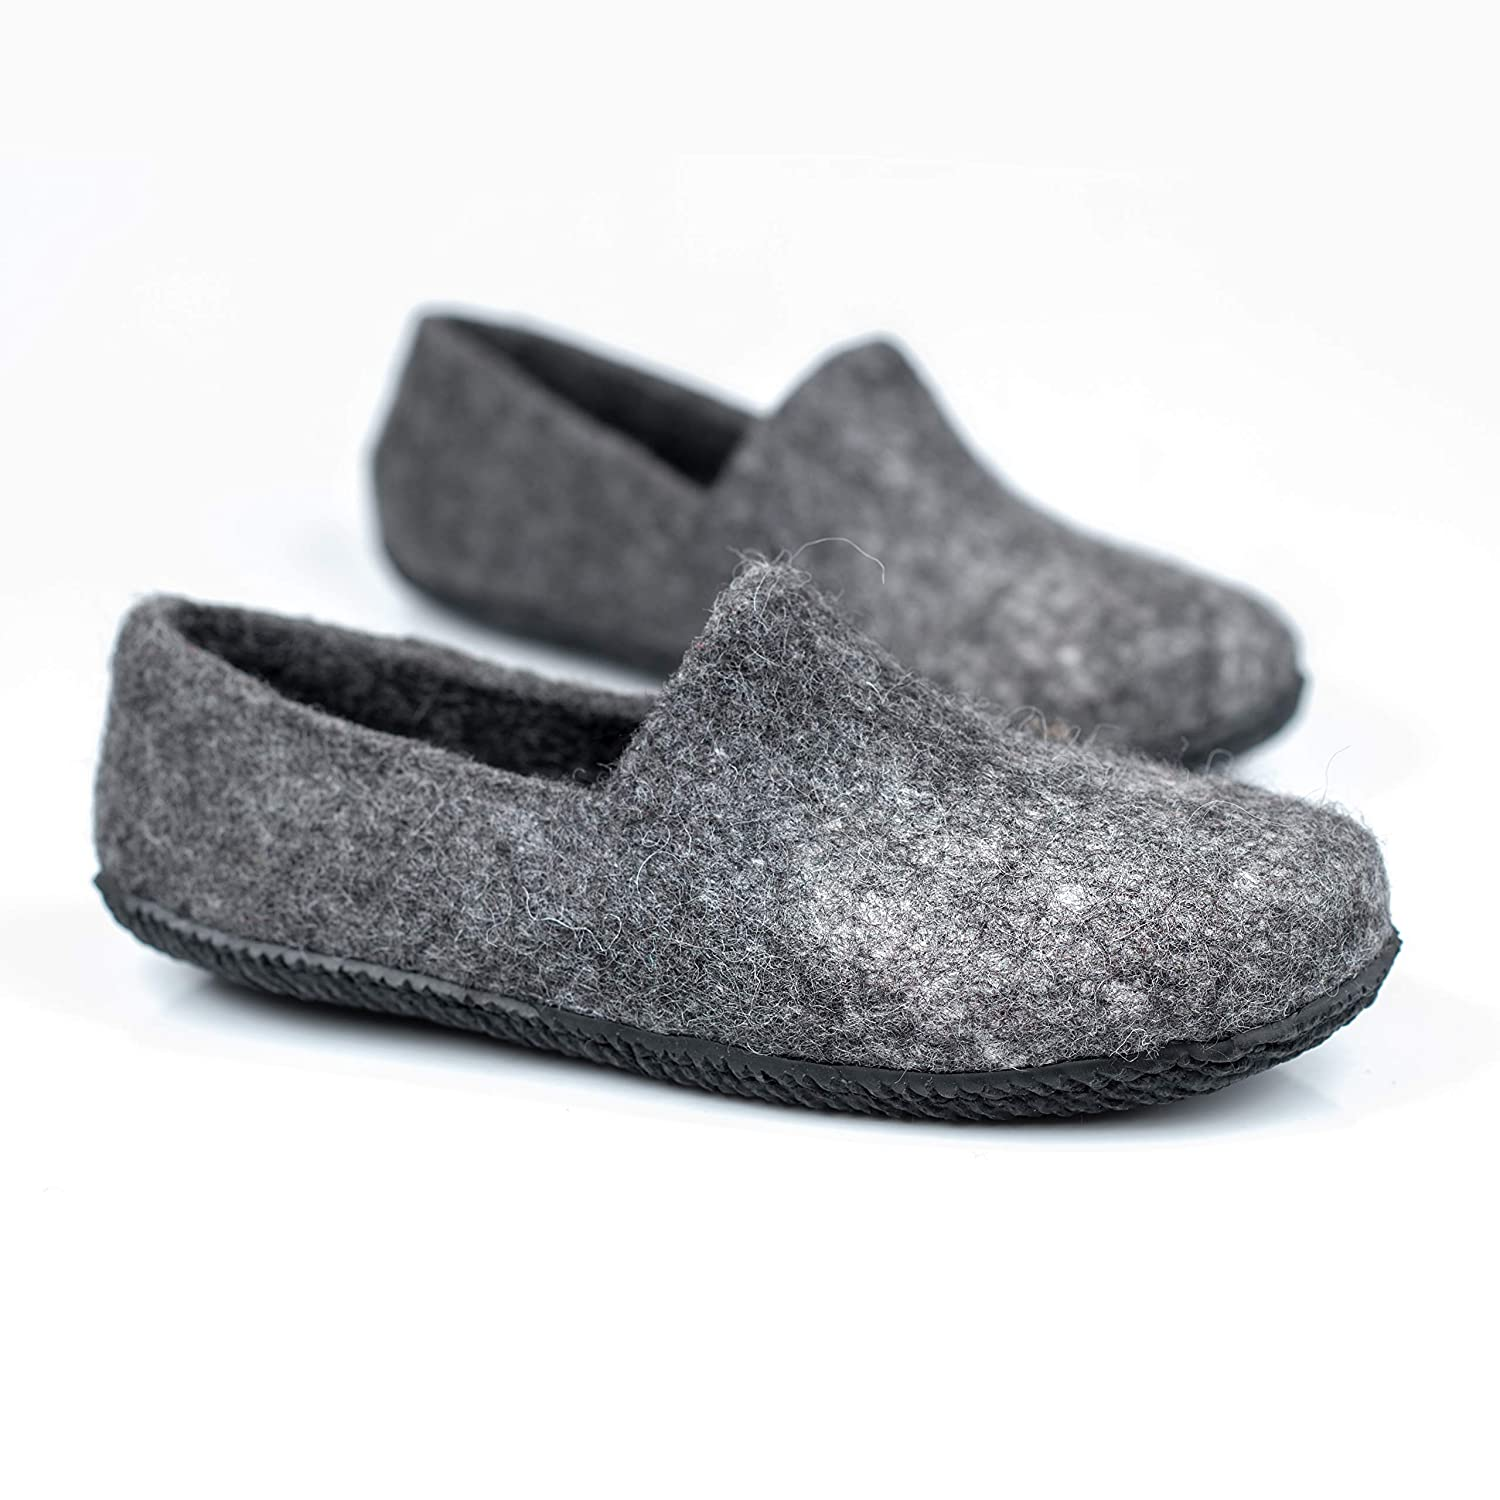 d7ba61204eab3 BureBure Felted Wool Clogs for Men Handmade in Europe Natural